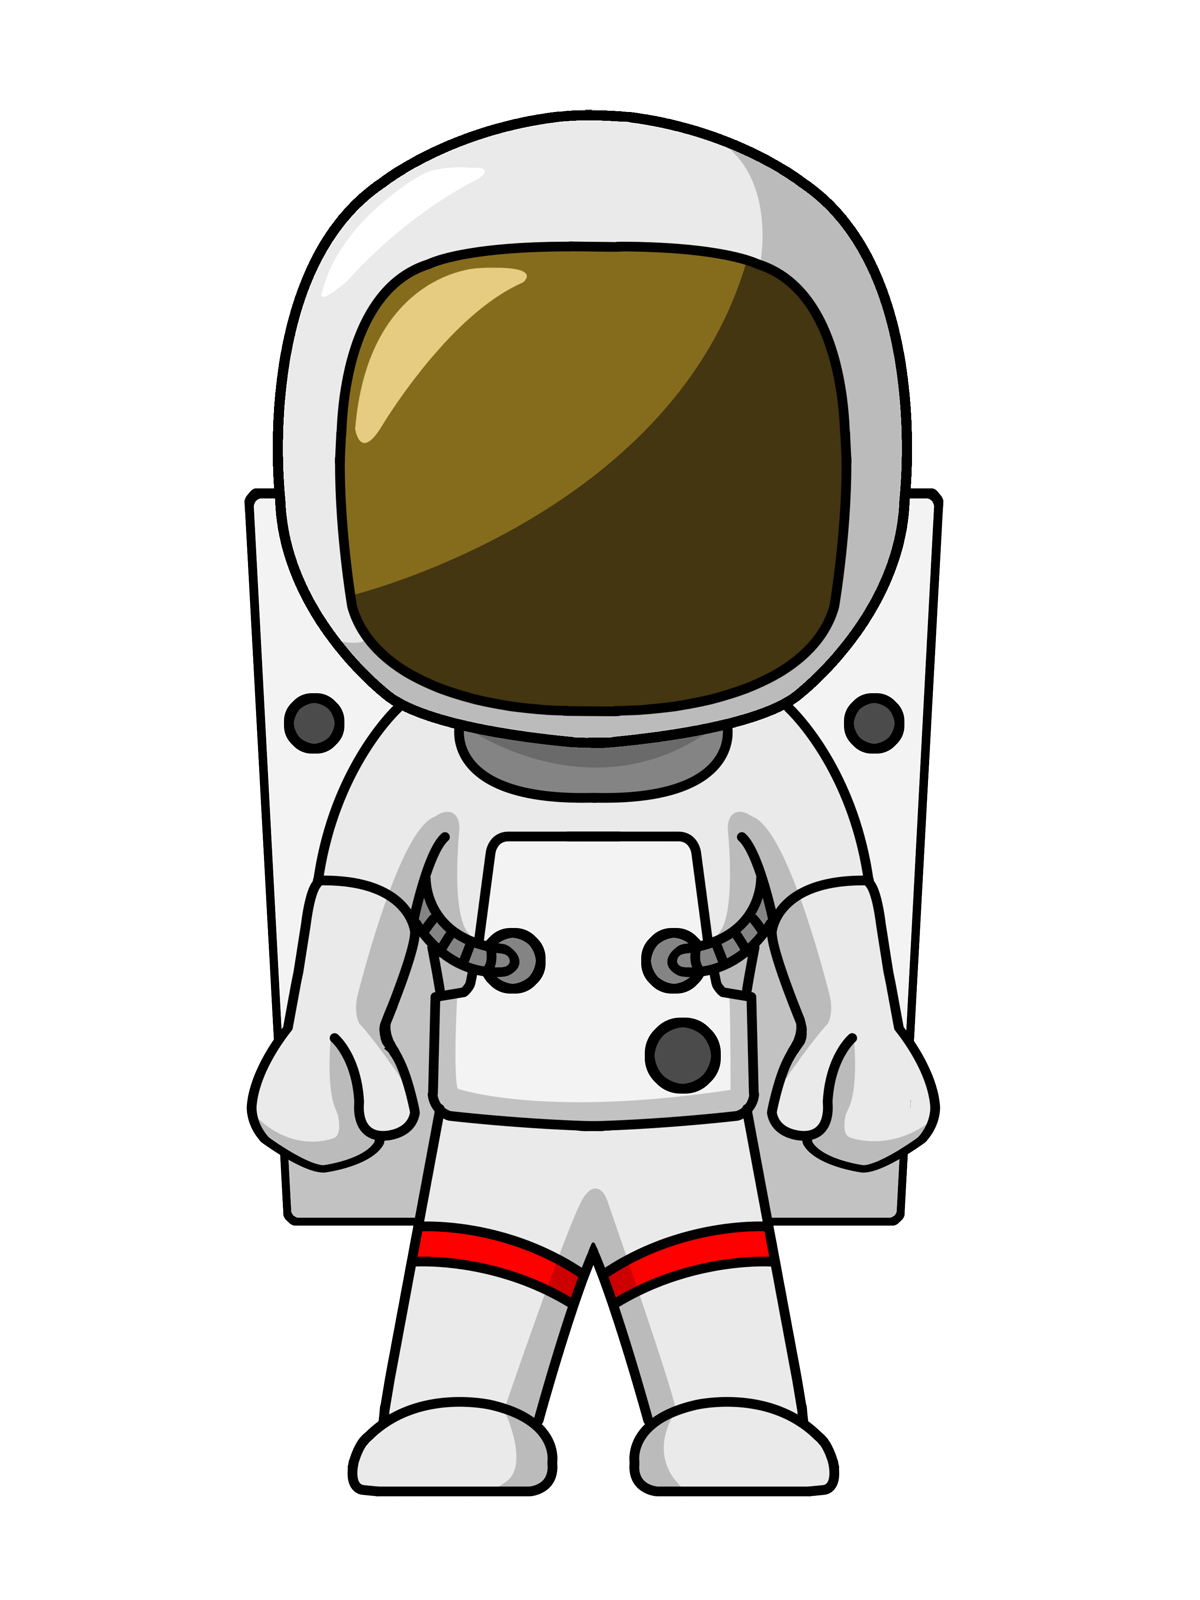 Anthony clipart cartoon life image freeuse Astronaut Clip Art Images Free For Commercial Use | 3D print ideas ... image freeuse